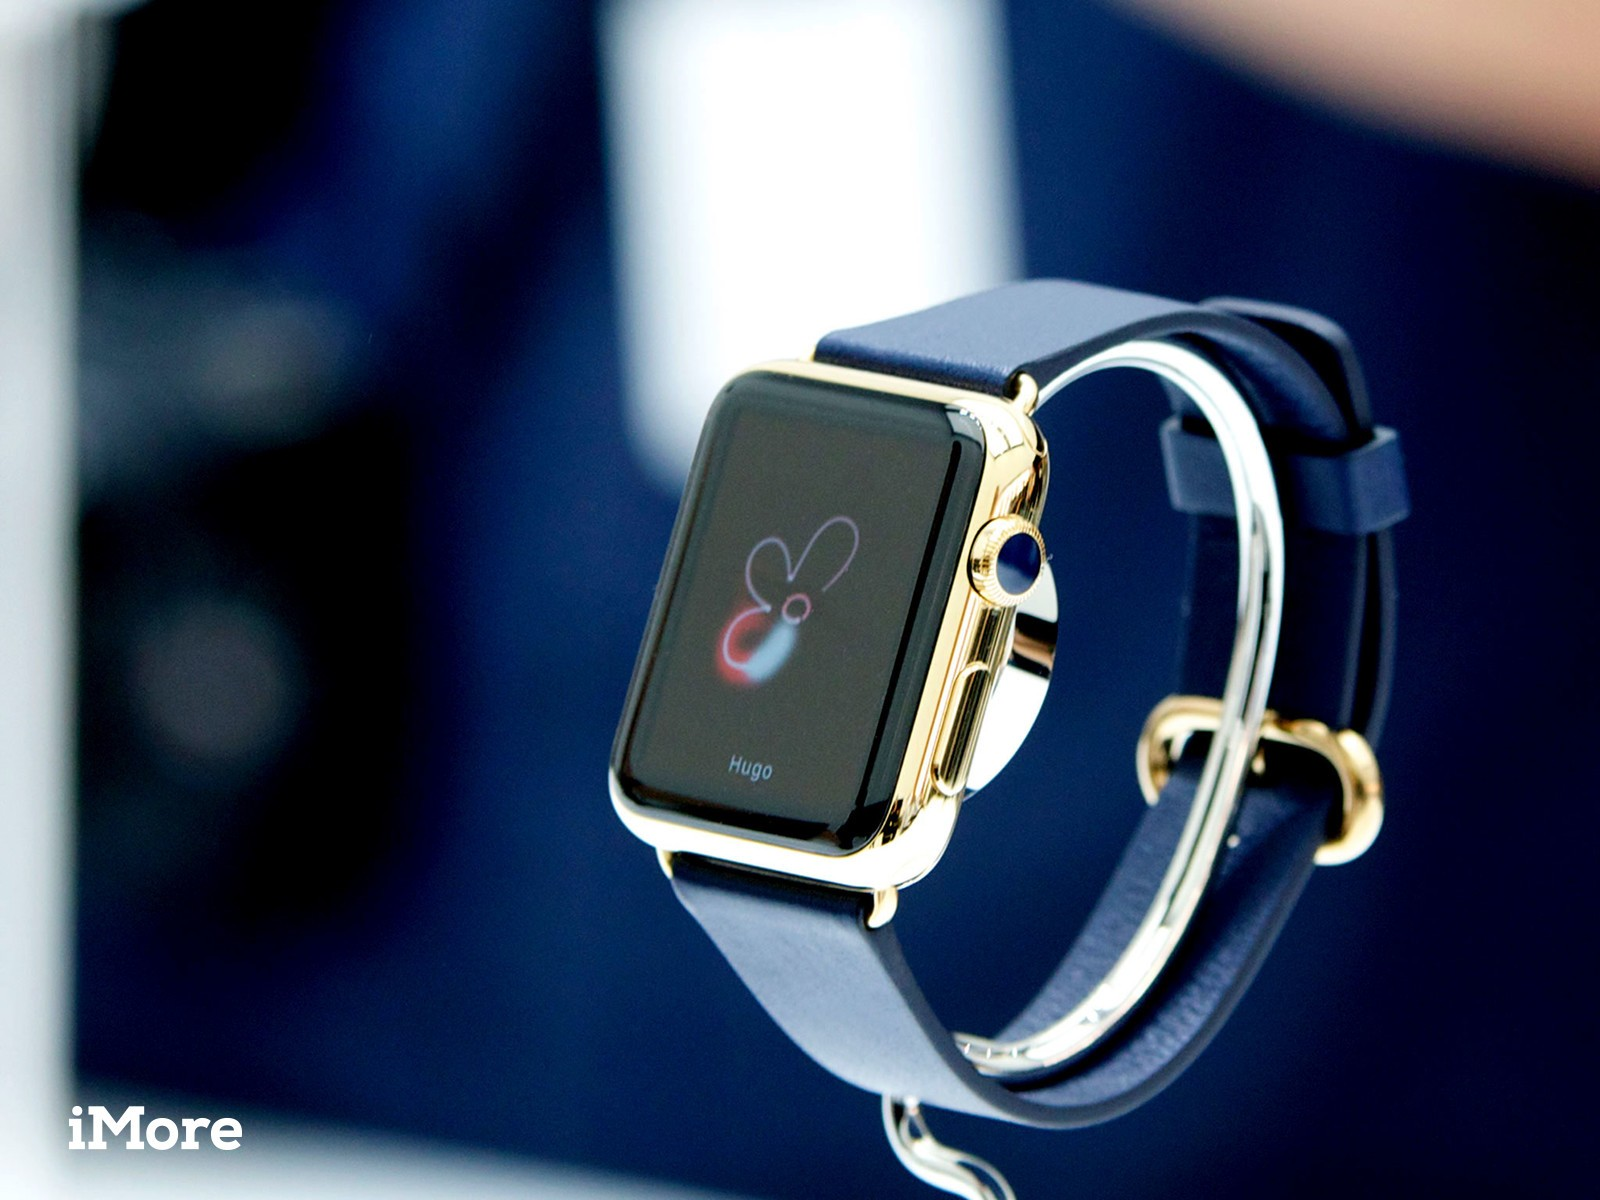 How secure is the Apple Watch?